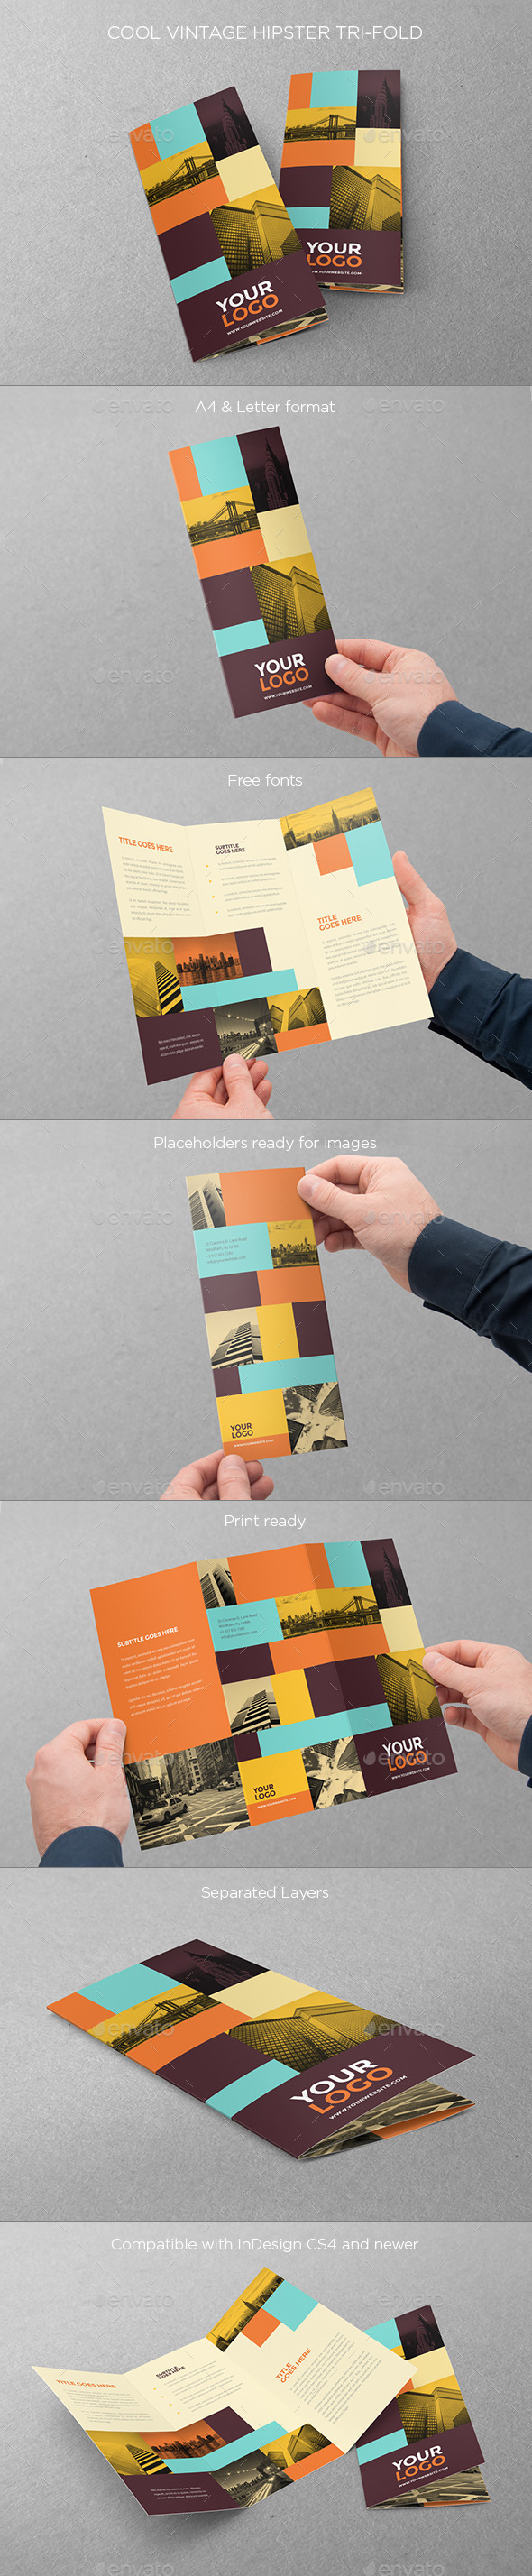 GraphicRiver Cool Vintage Hipster Trifold 10841893